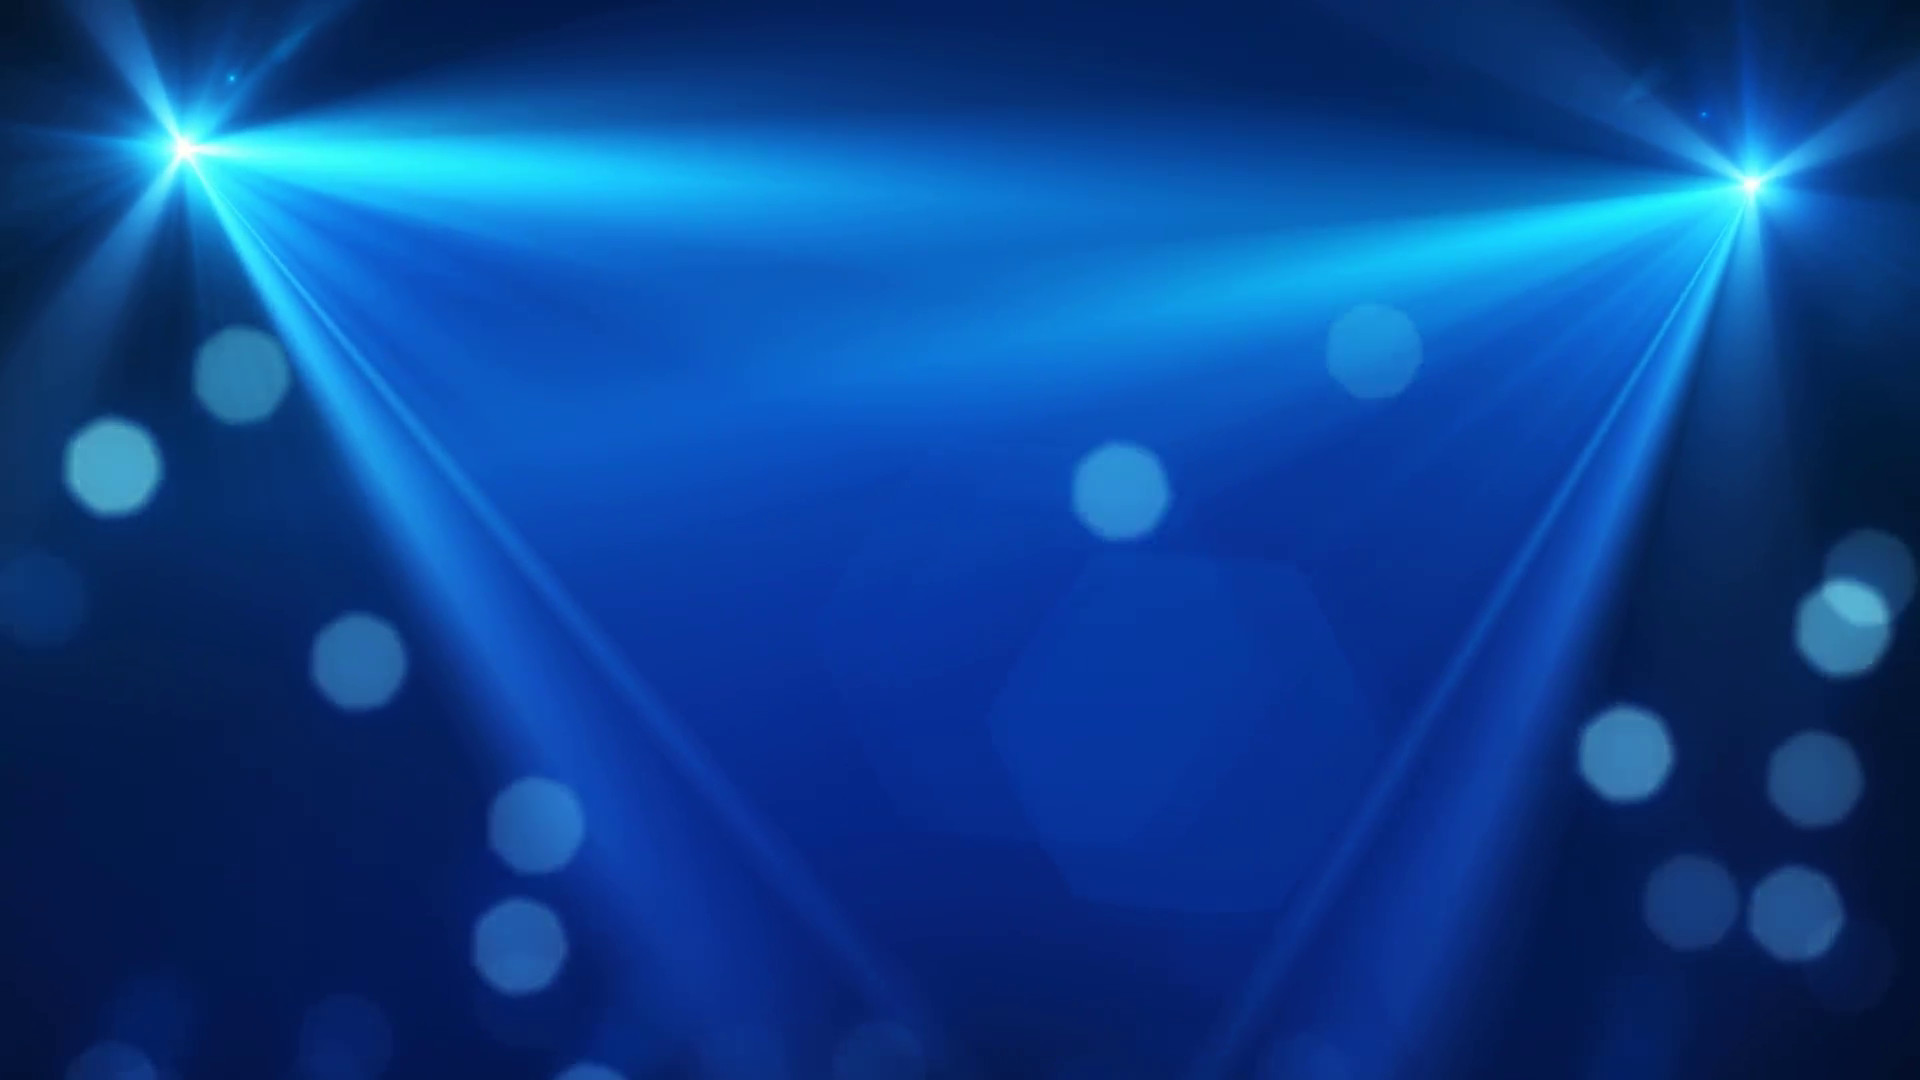 Stage Background Images 183 ① Wallpapertag